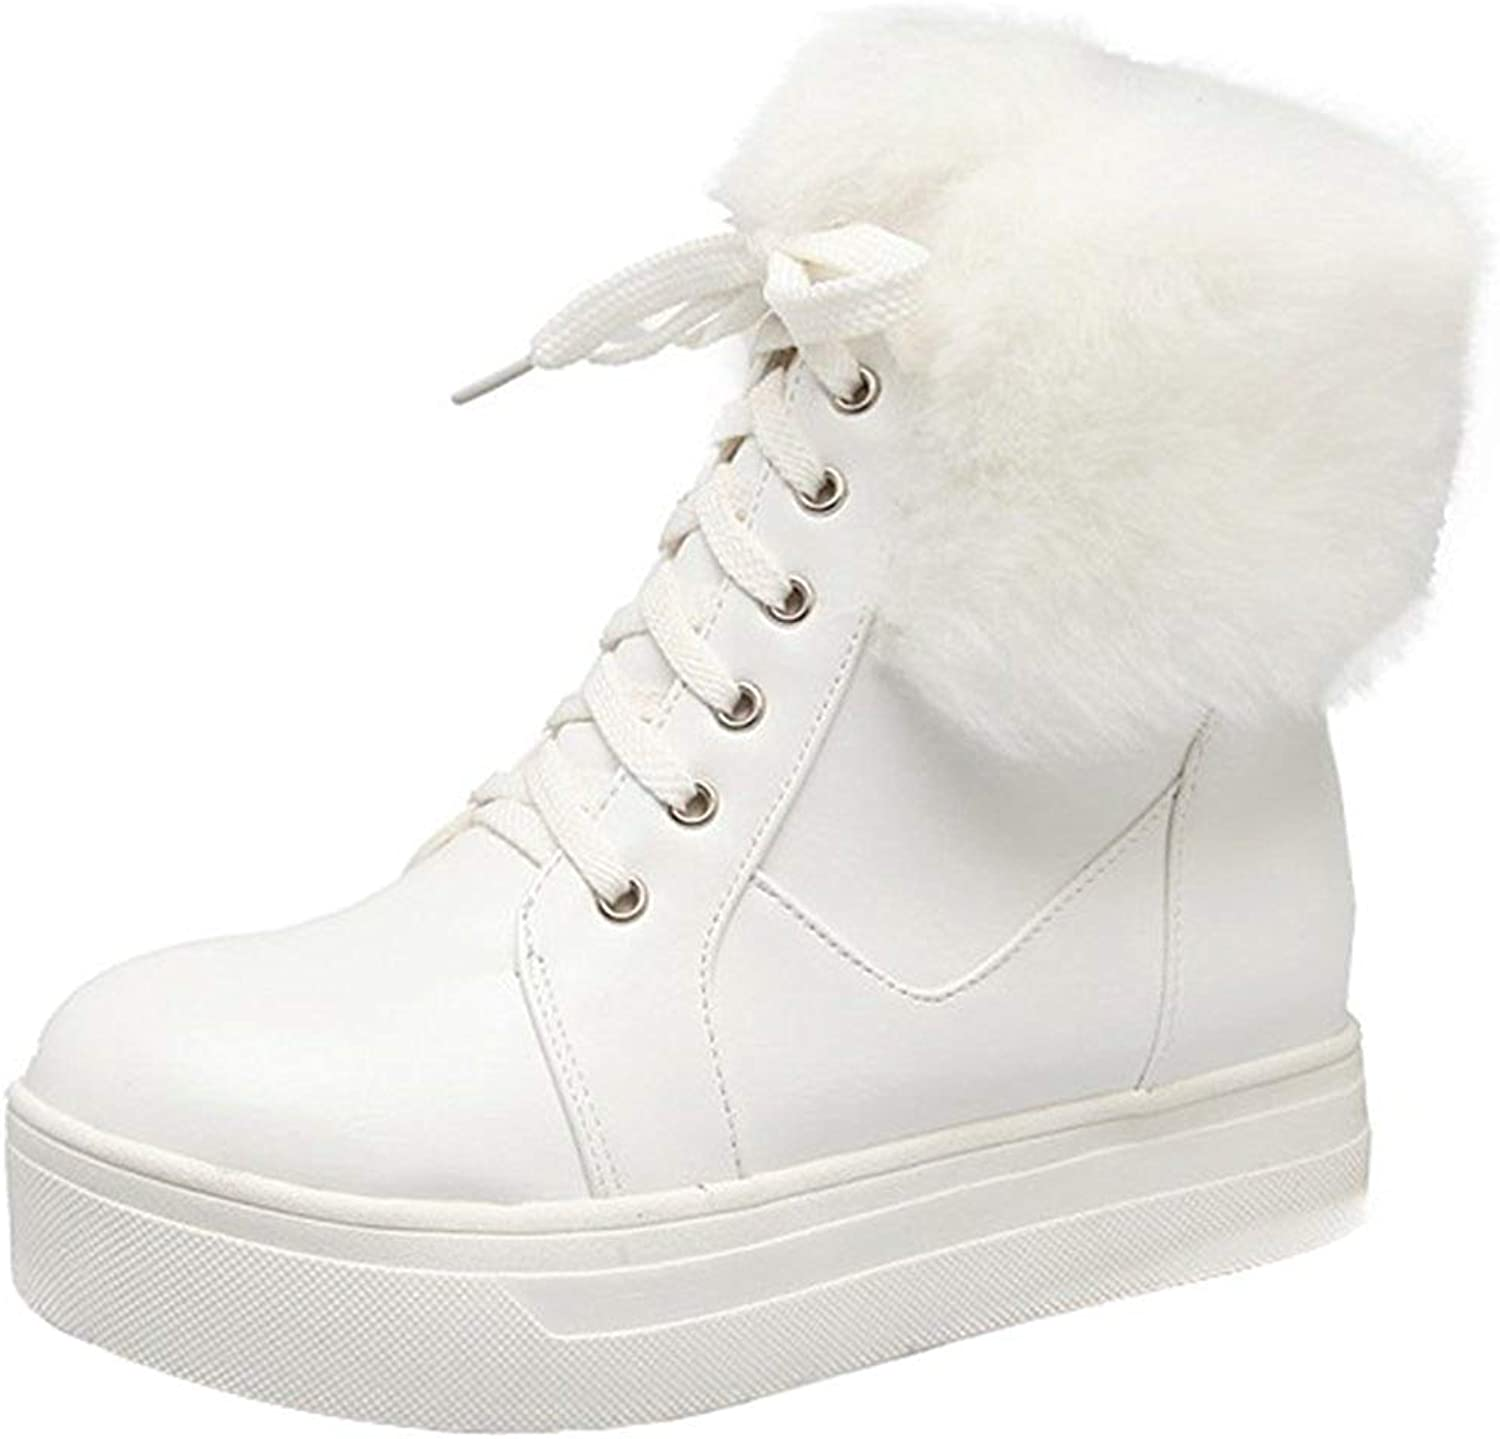 Gcanwea Women's Casual Faux Fur Folded Lace Ankle High Sneaker Booties Round Toe Platform Short Snow Boots Fashion Skinny Rubber Sole Ladies Comfortable Joker Breathable White 5 M US Snow Boots